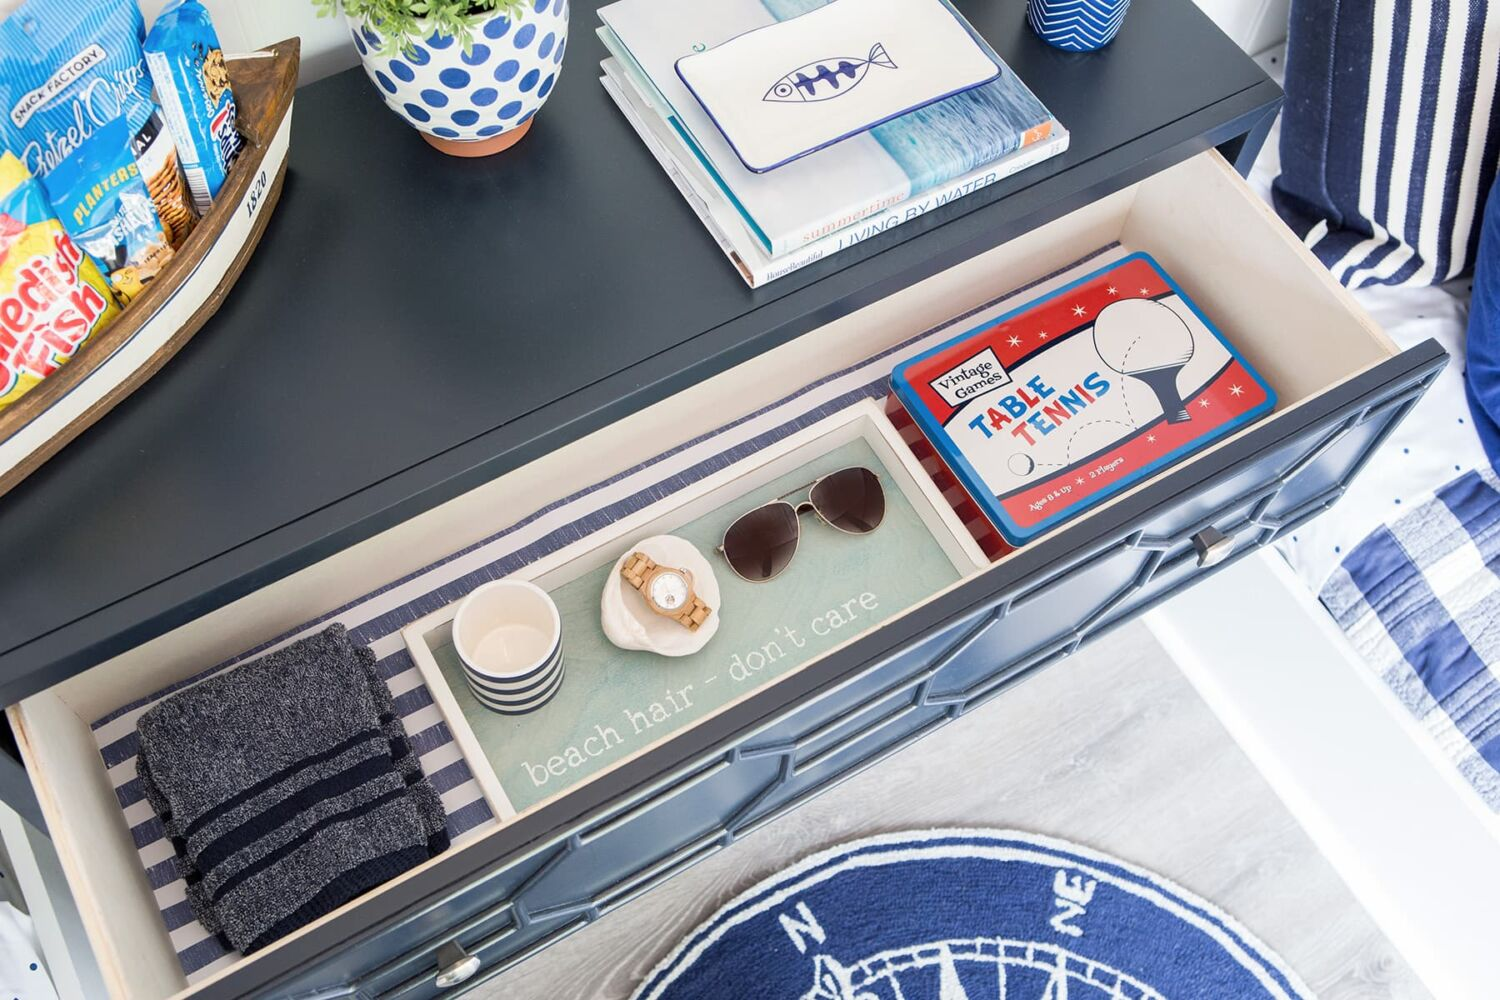 Don't forget all the little details when setting up a guest room down at the lake. Think about scented drawer liners and snacks and other incidentals.